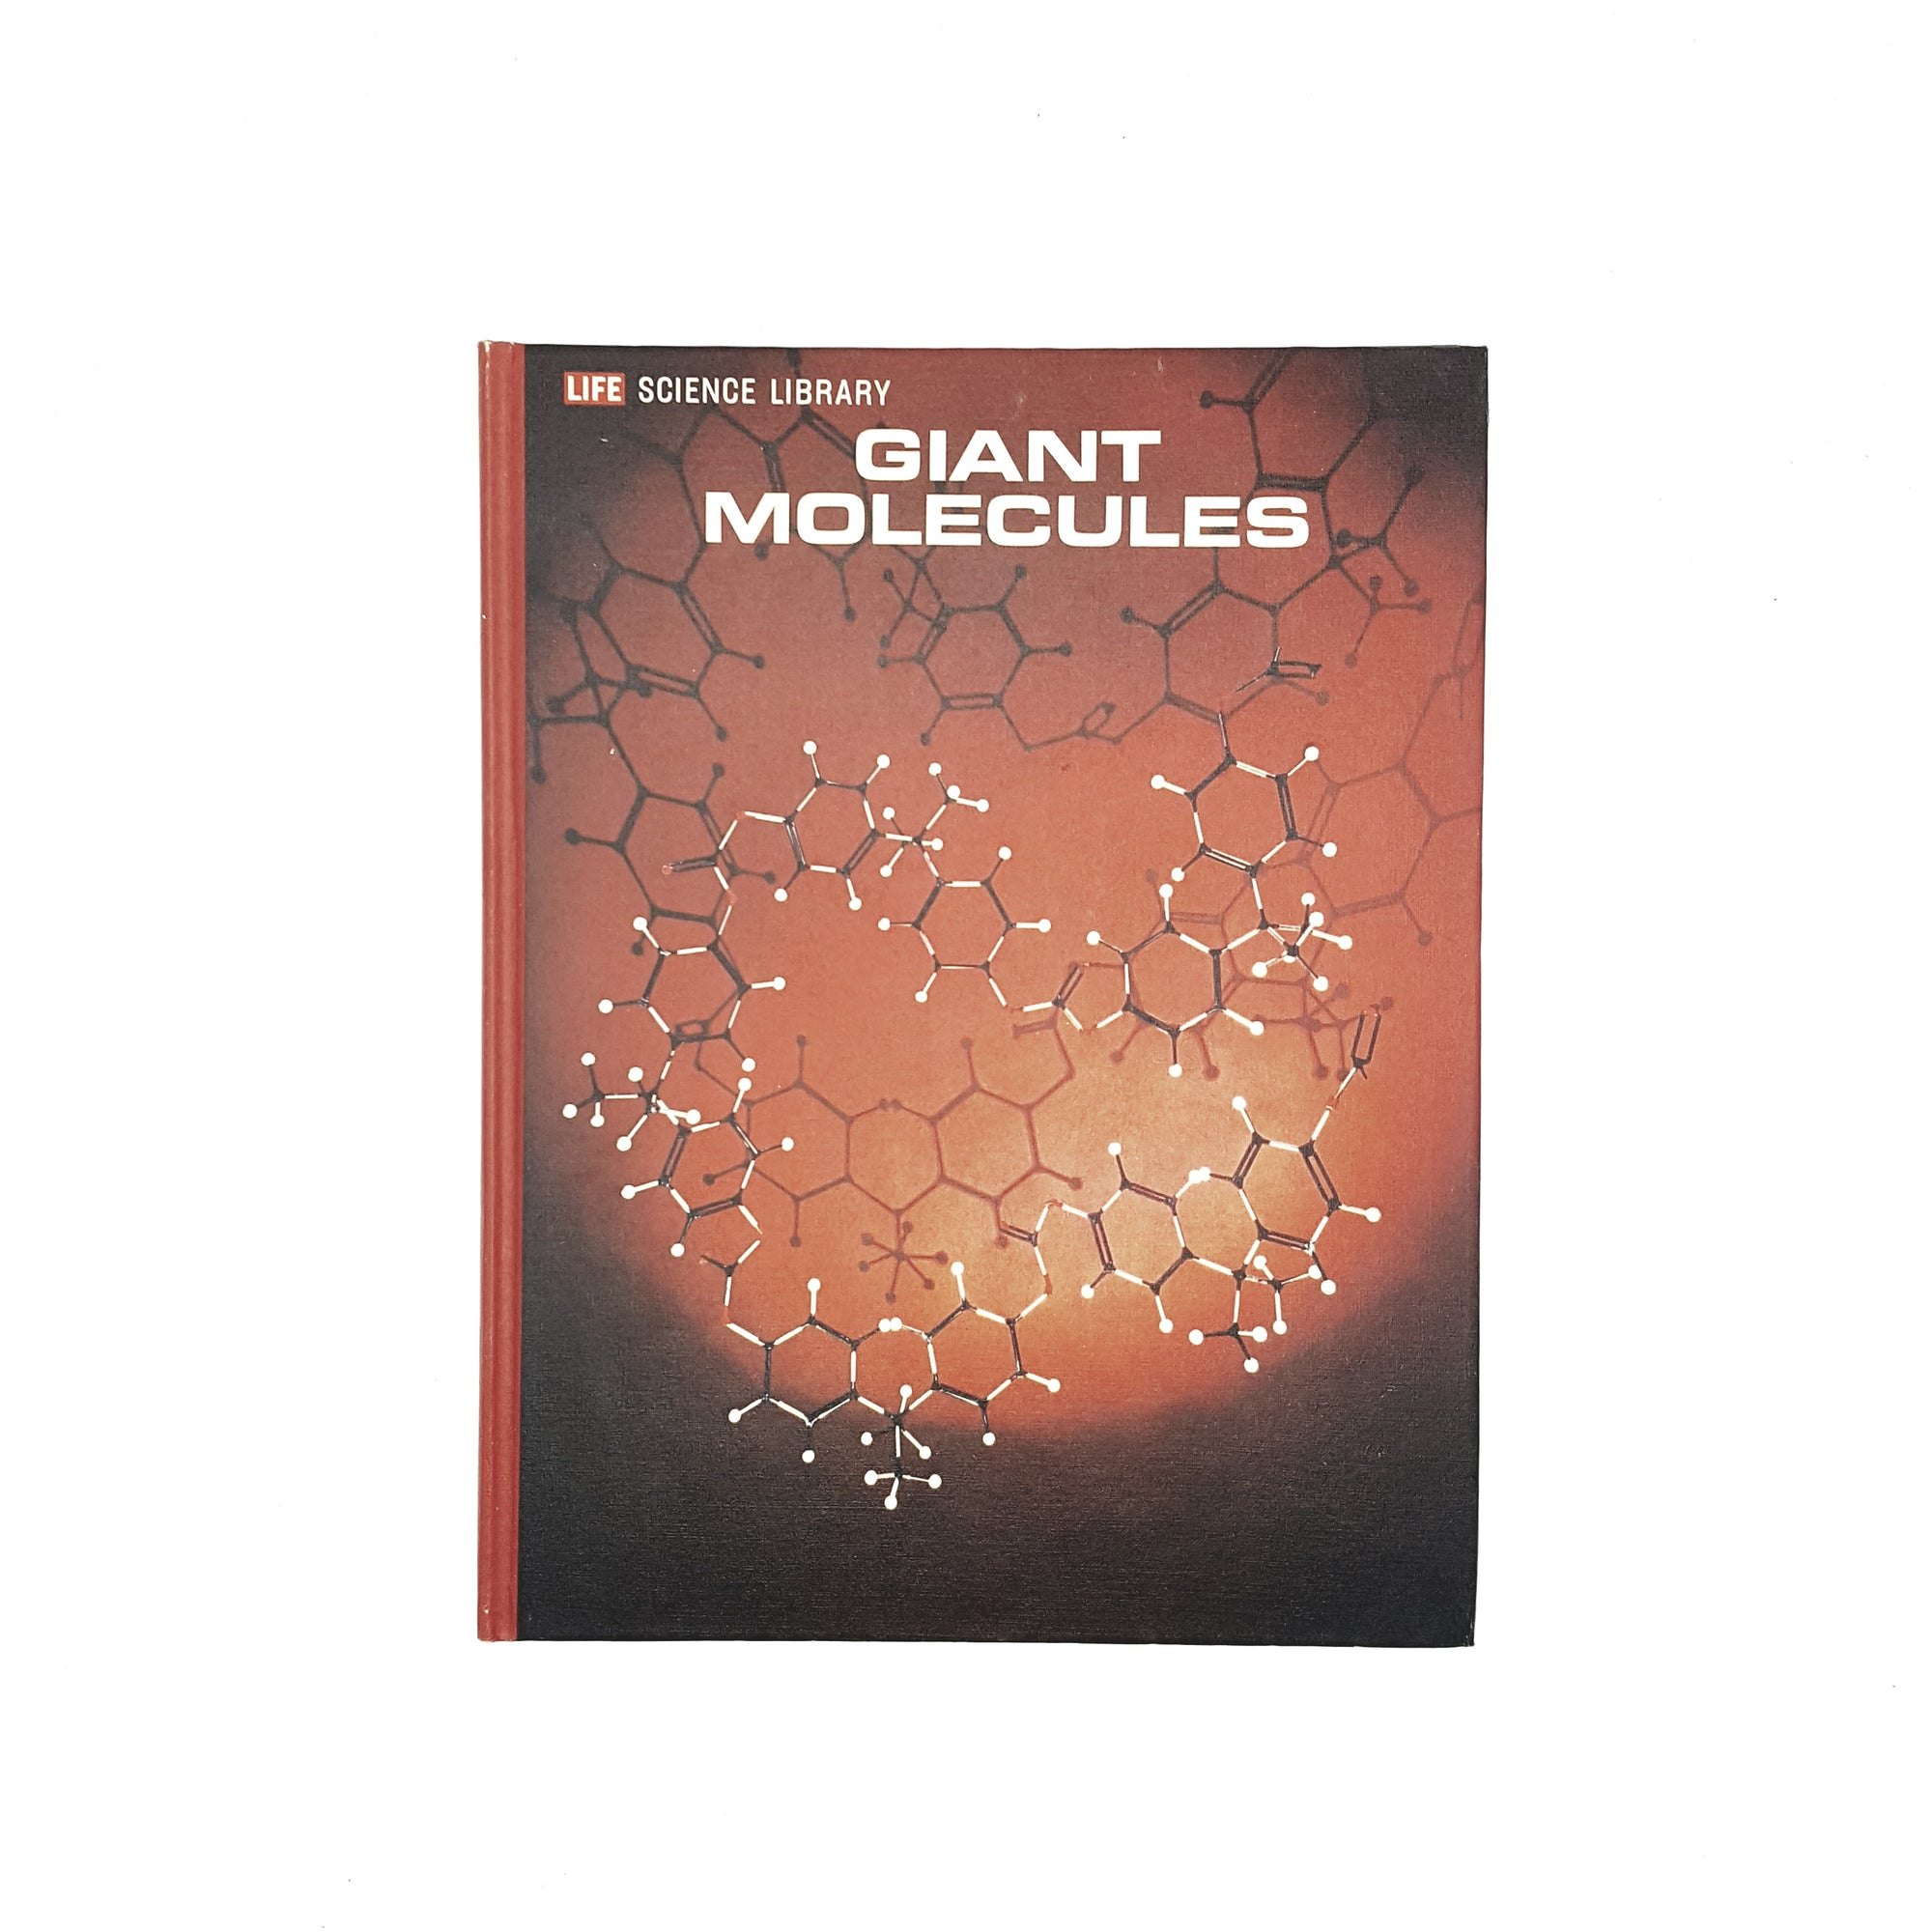 Life Science Library: Giant Molecules 1972